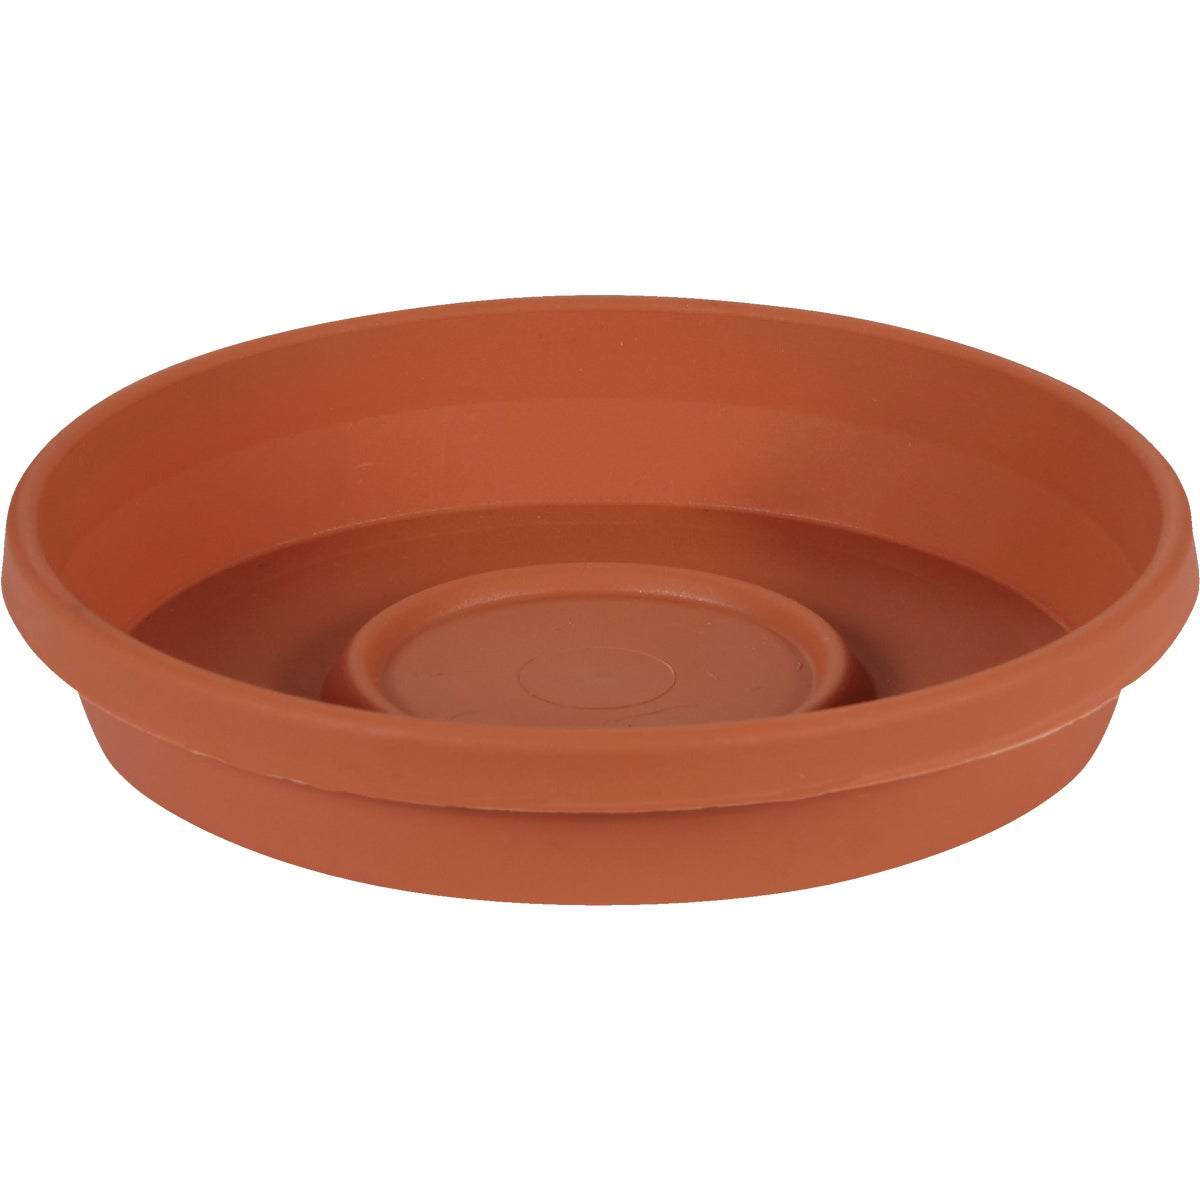 "6"" CLAY POLY SAUCER"